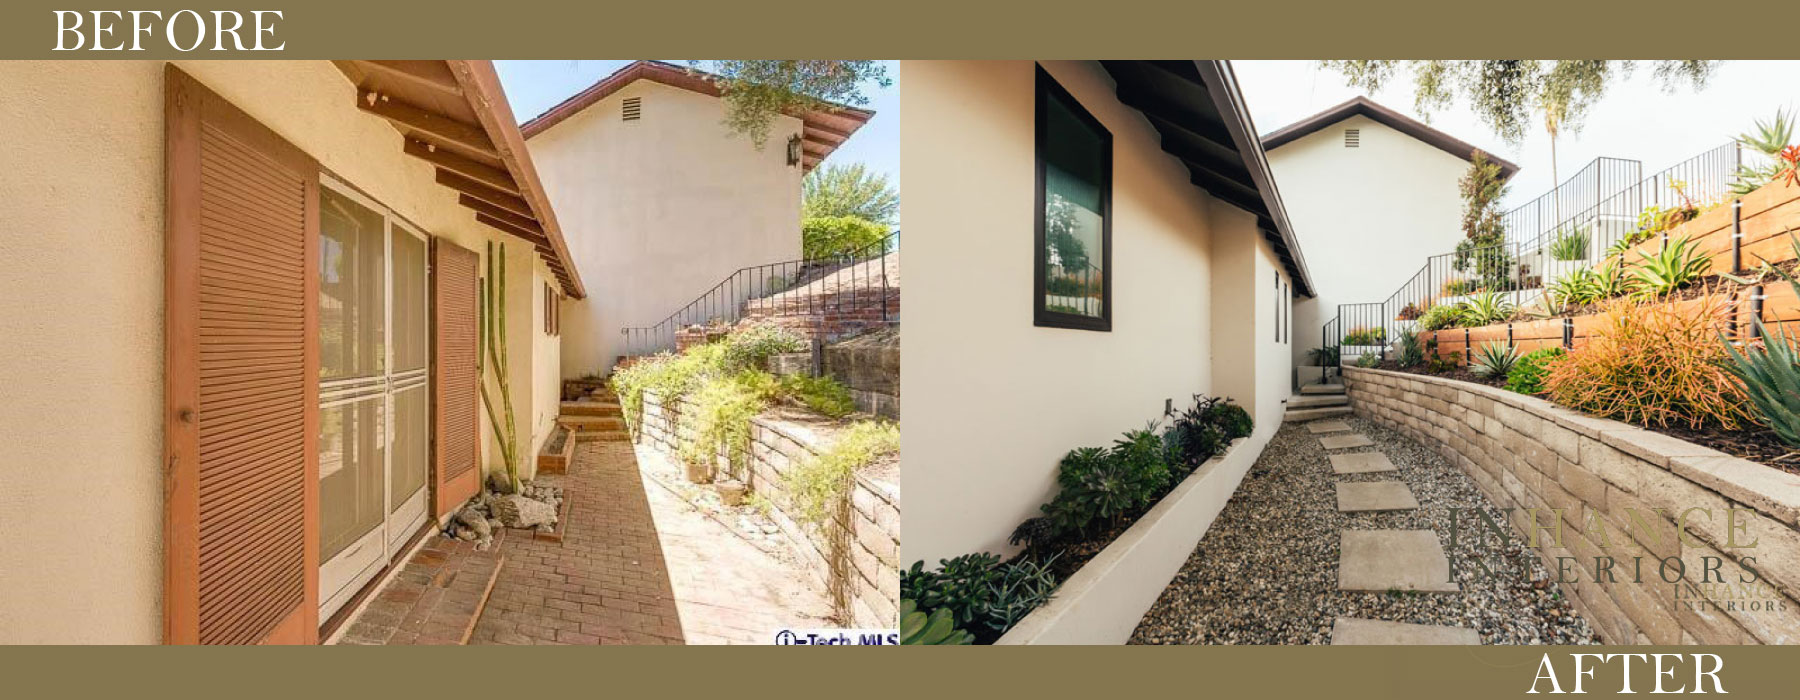 Sequoia_Before-and-After_Side-OUtdoor.jpg